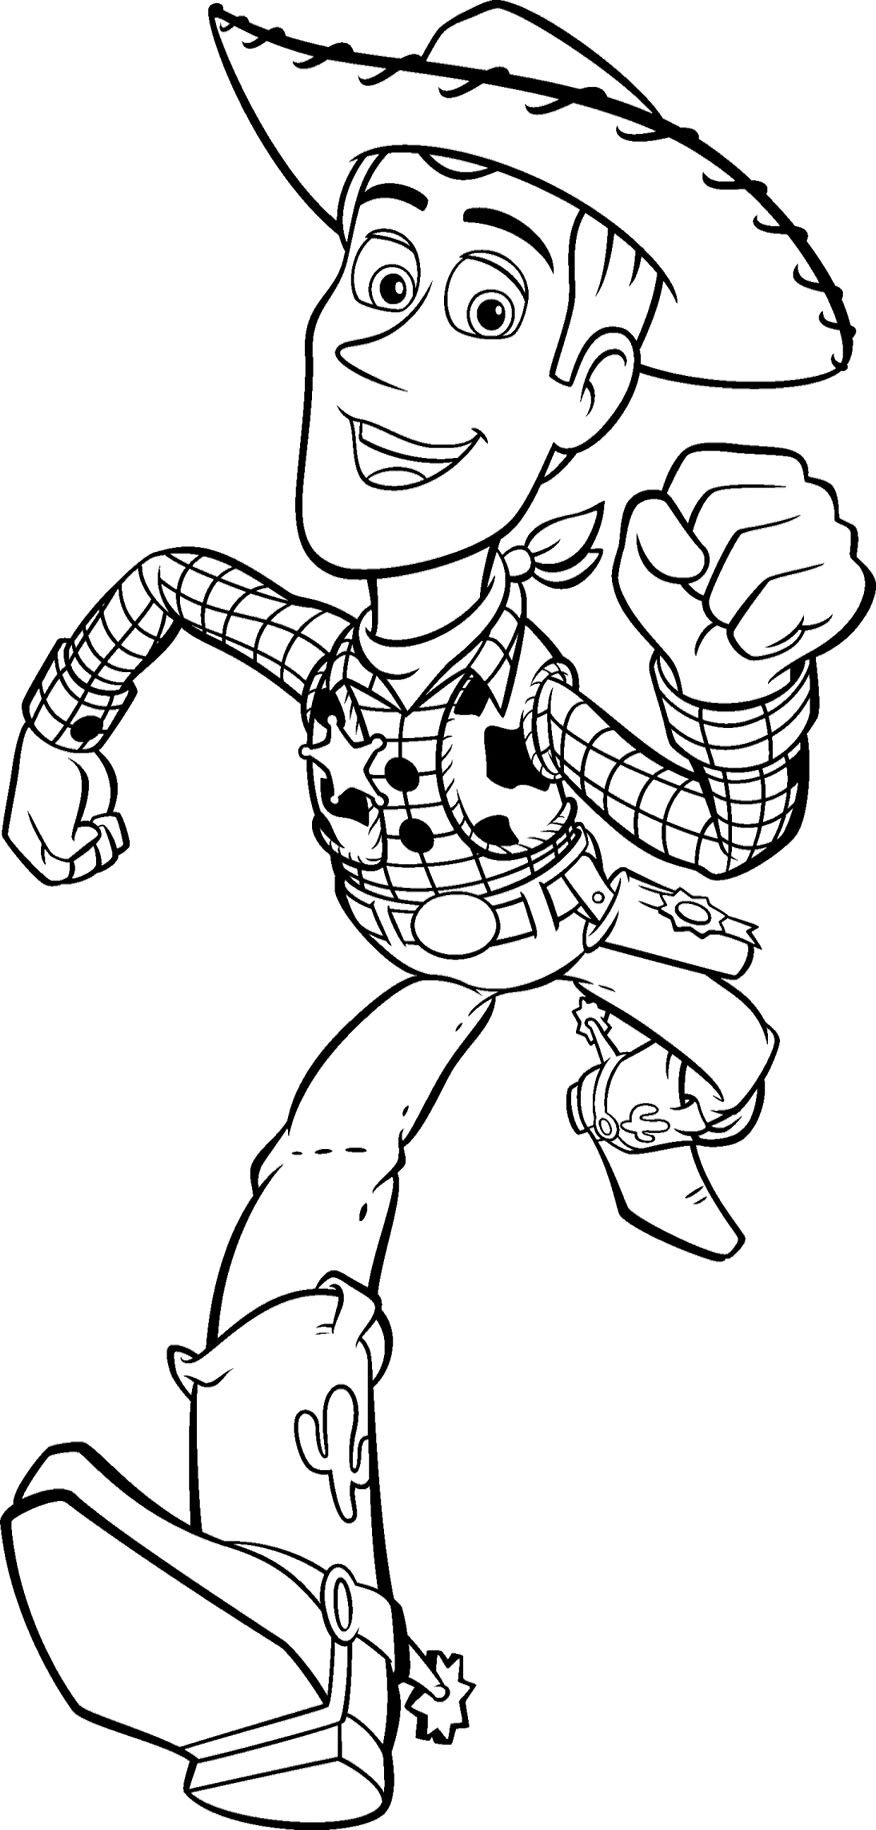 Toy Story Woody Runs Fast Coloring Pages education